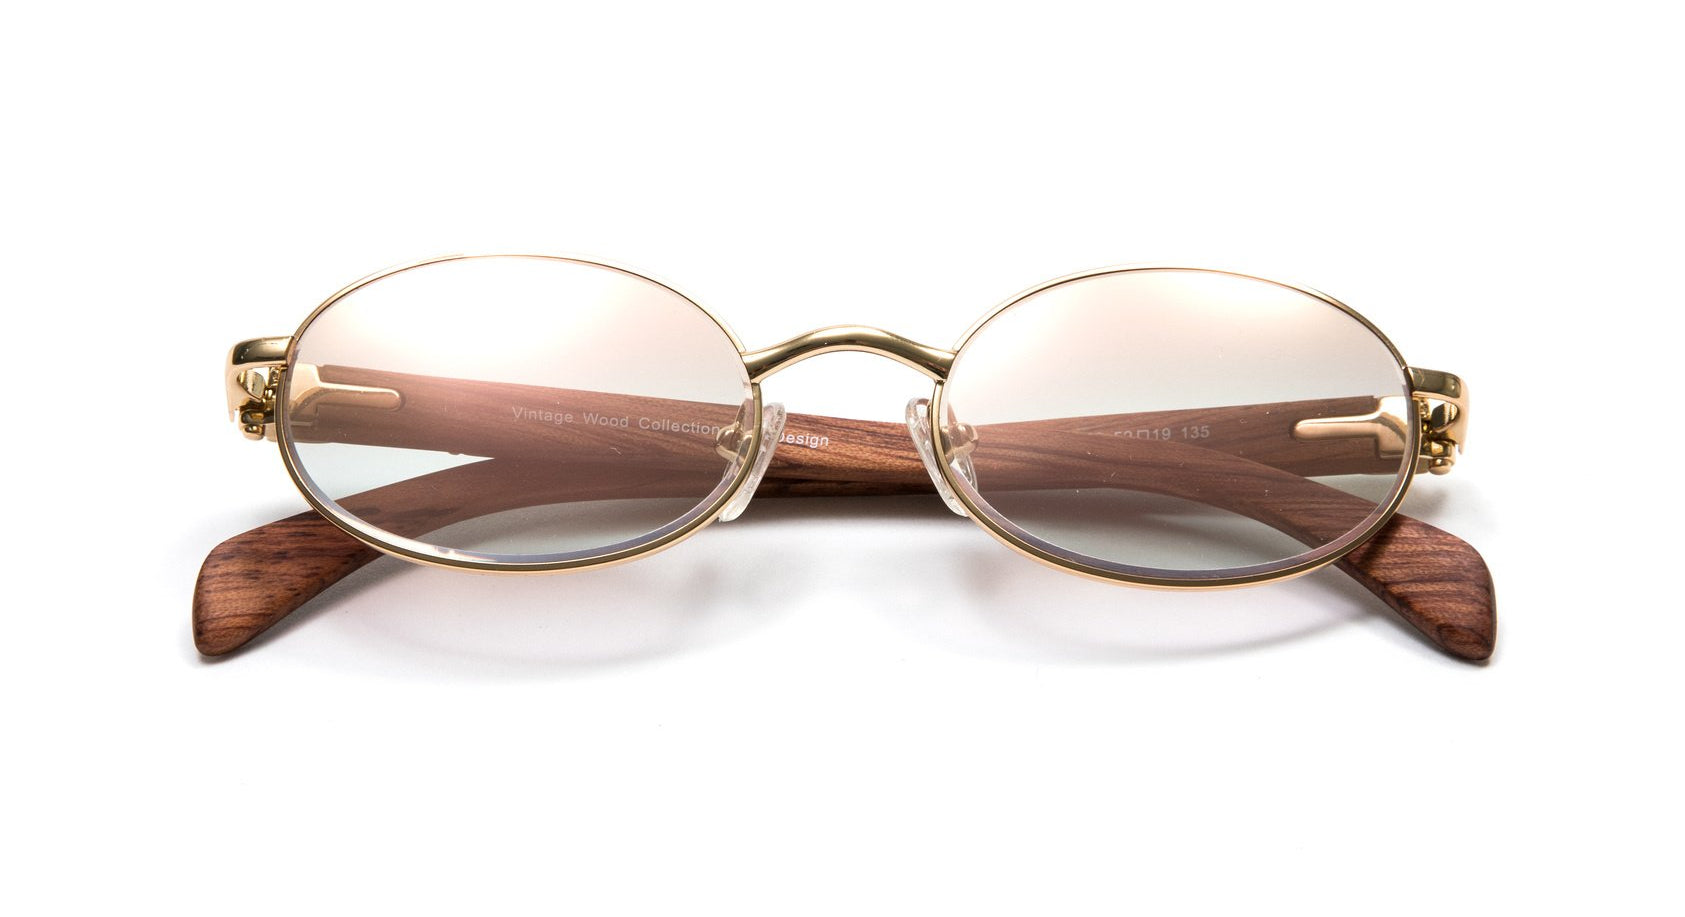 Vintage Wood Collection Full Rim Oval Gold and Brown Wood Sunglasses, Gradient Brown White Gold Flash Lenses, as seen on YOUNG MA